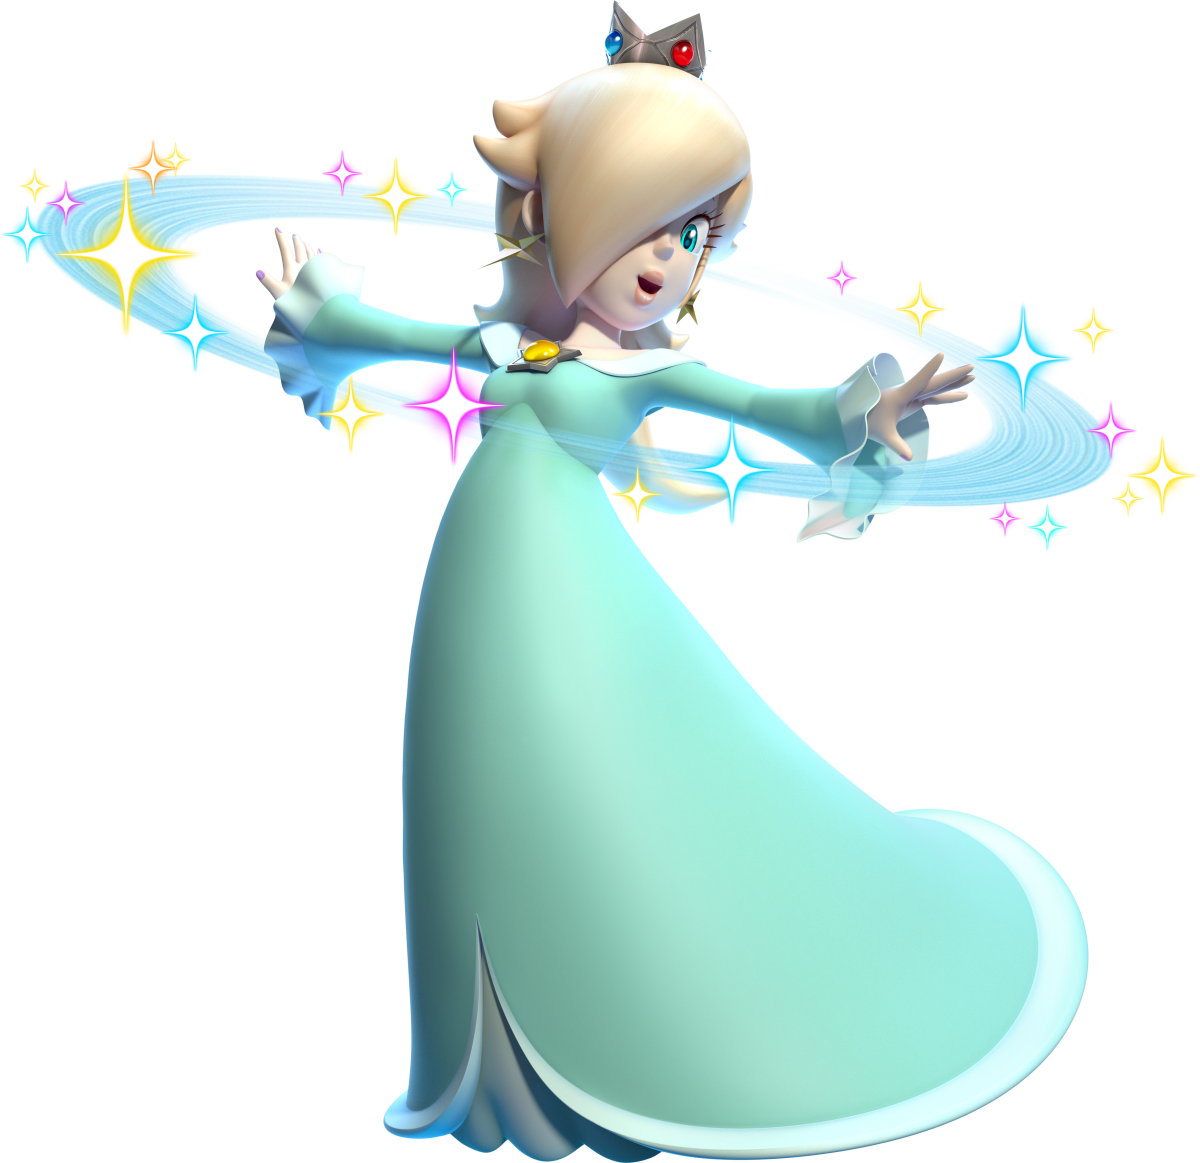 Is Rosalina Peach's Daughter? The Reshuffle Theory